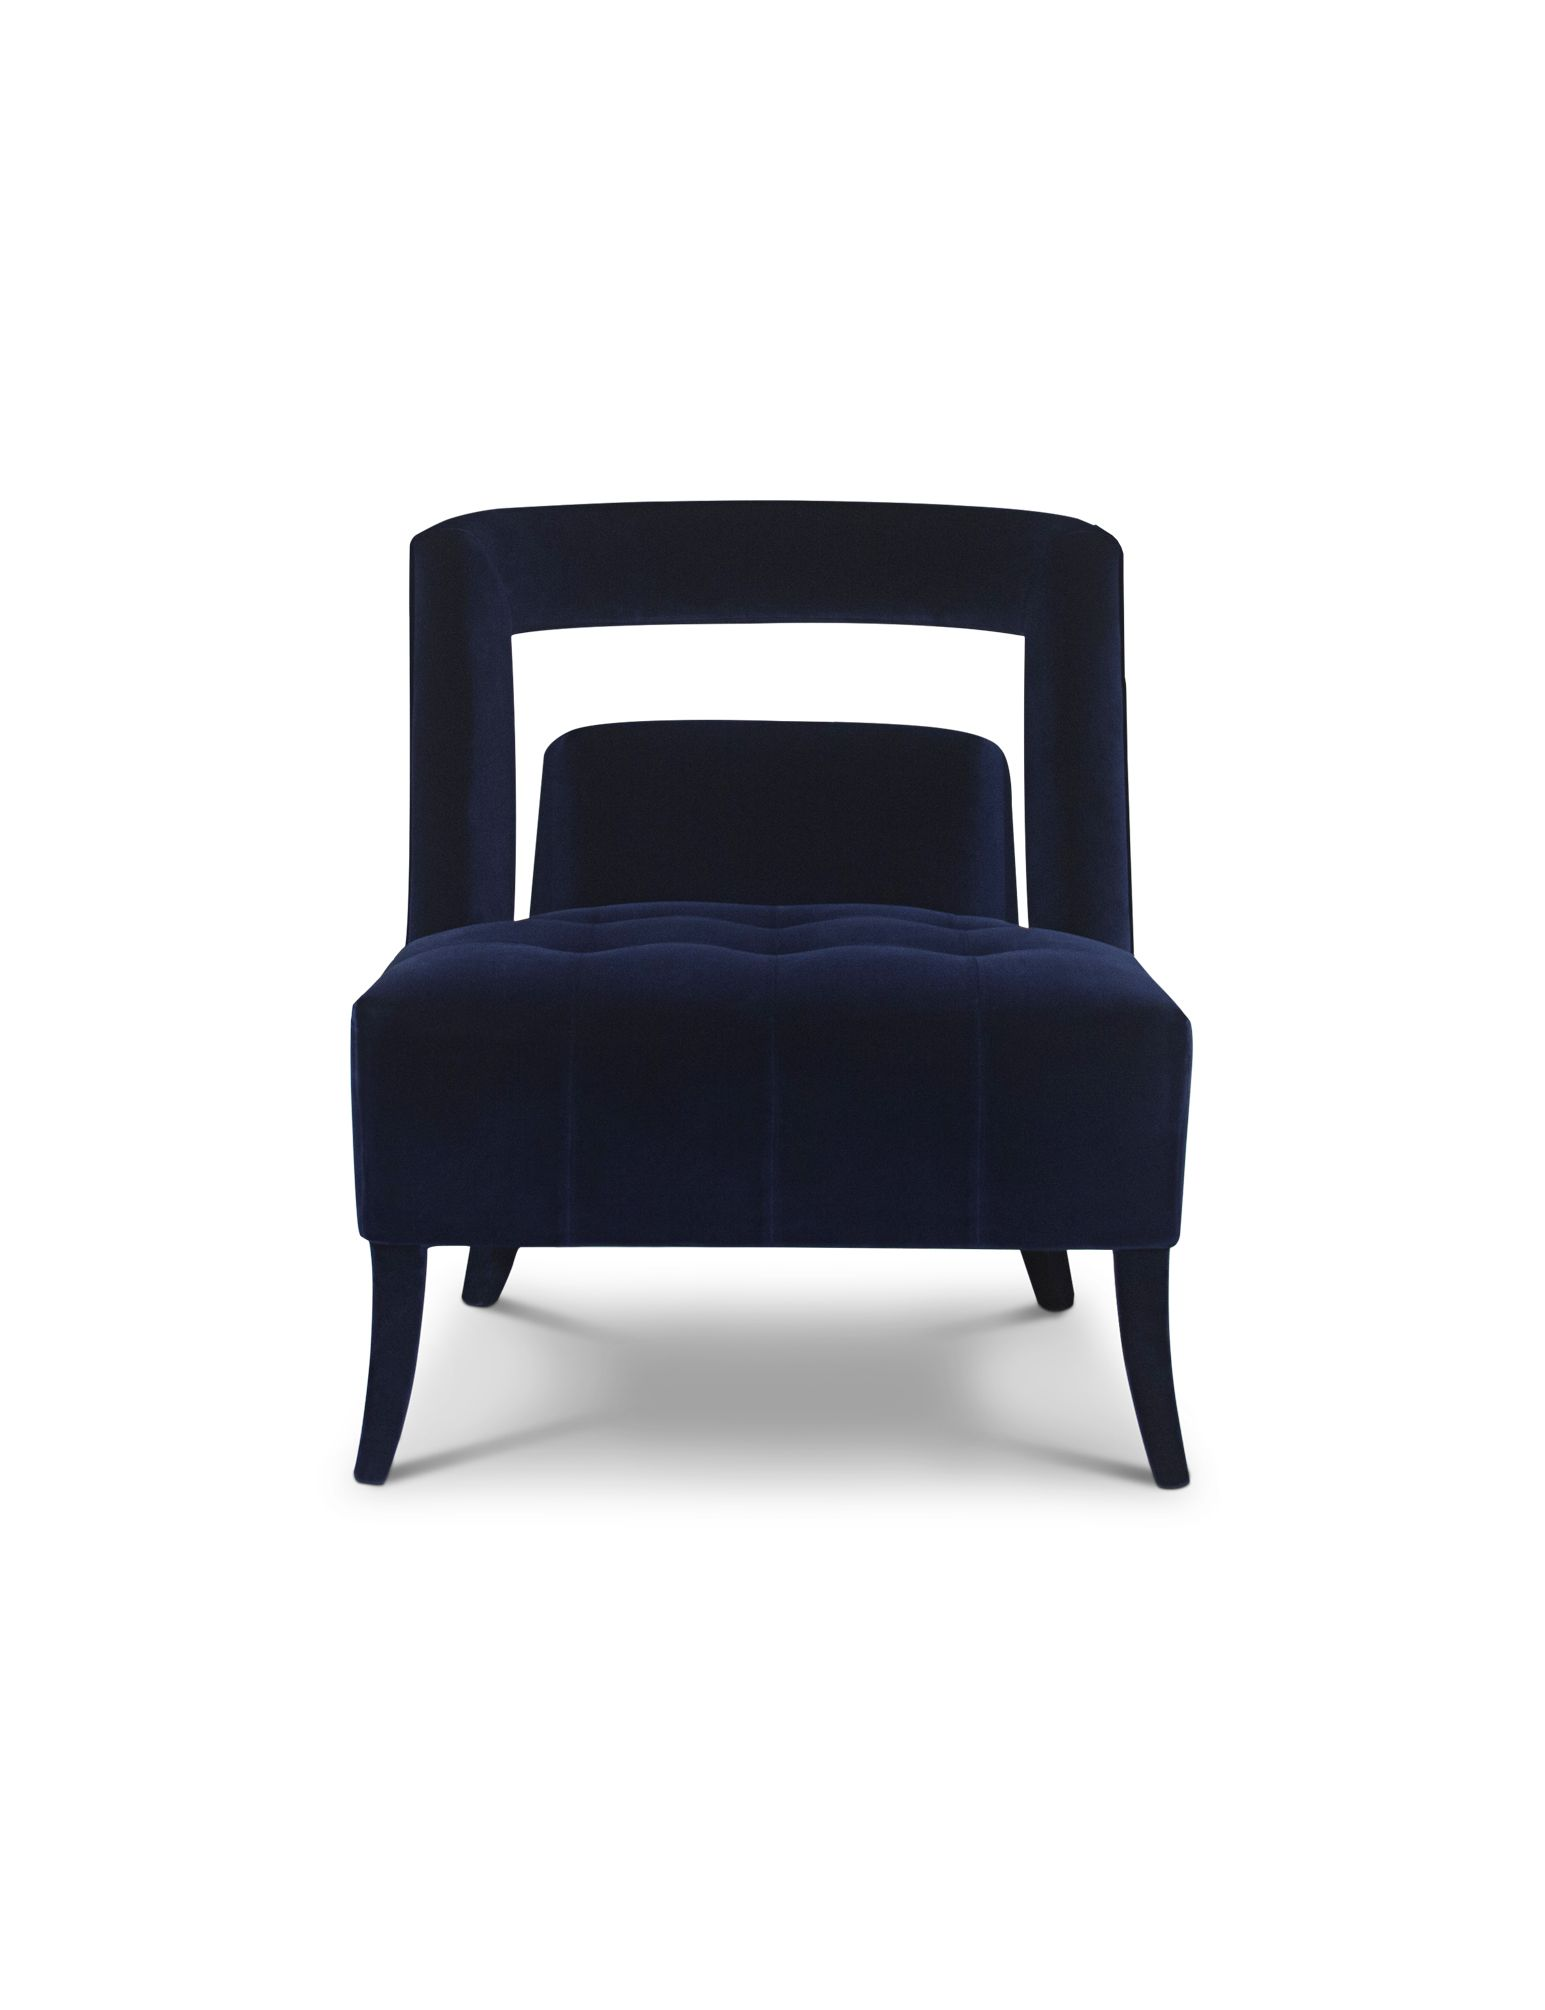 Naj is a classic modern armchair with straight lines fully upholstered in cotton velvet